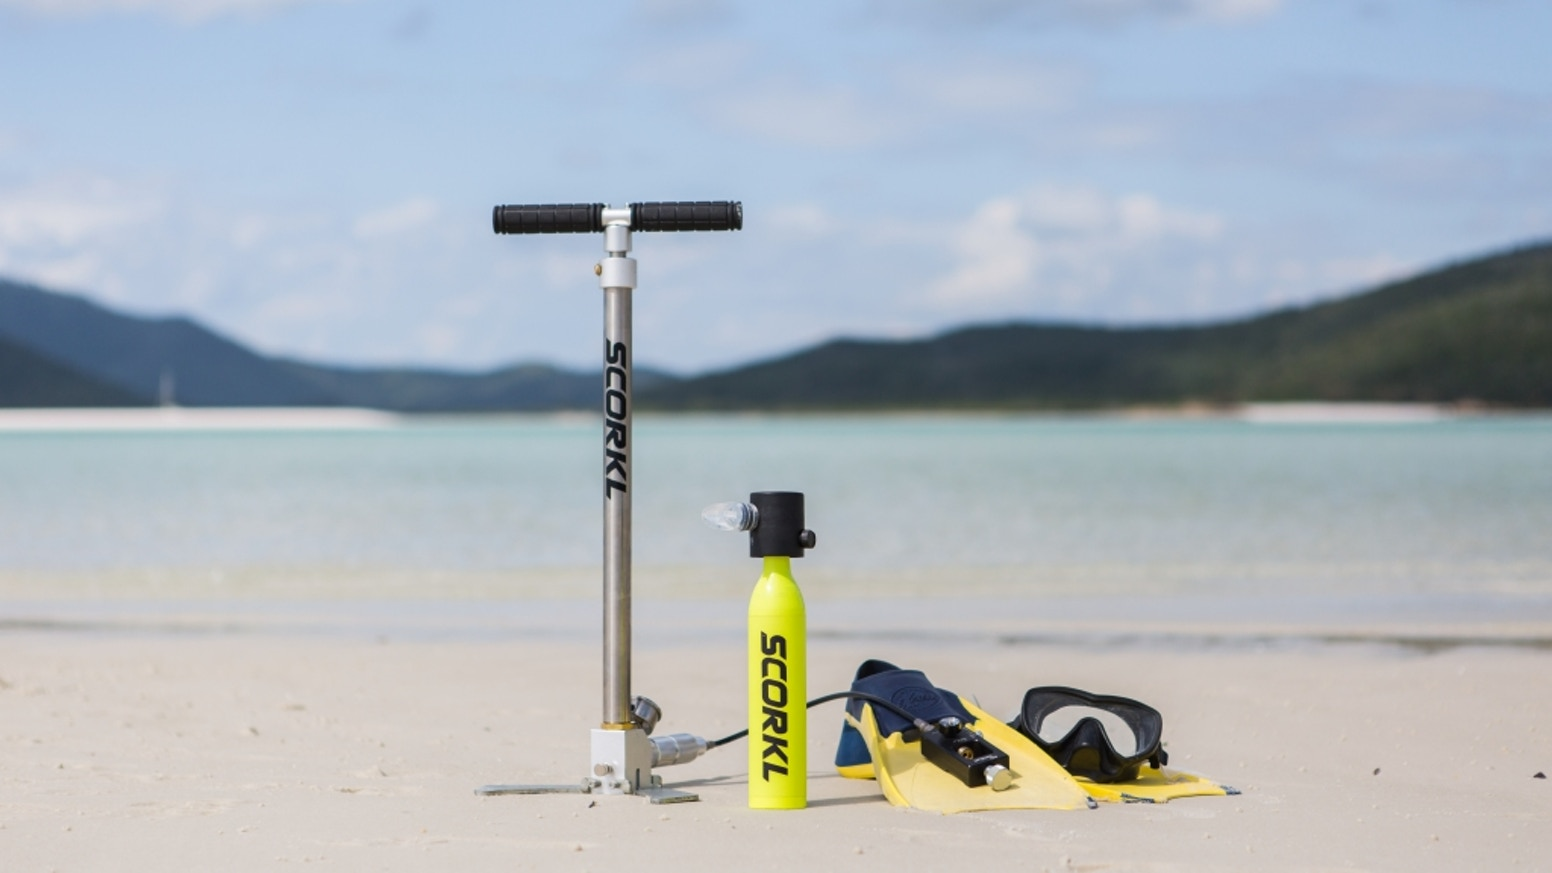 Scorkl is lightweight, portable, refillable via hand pump and gives you up to 10min underwater